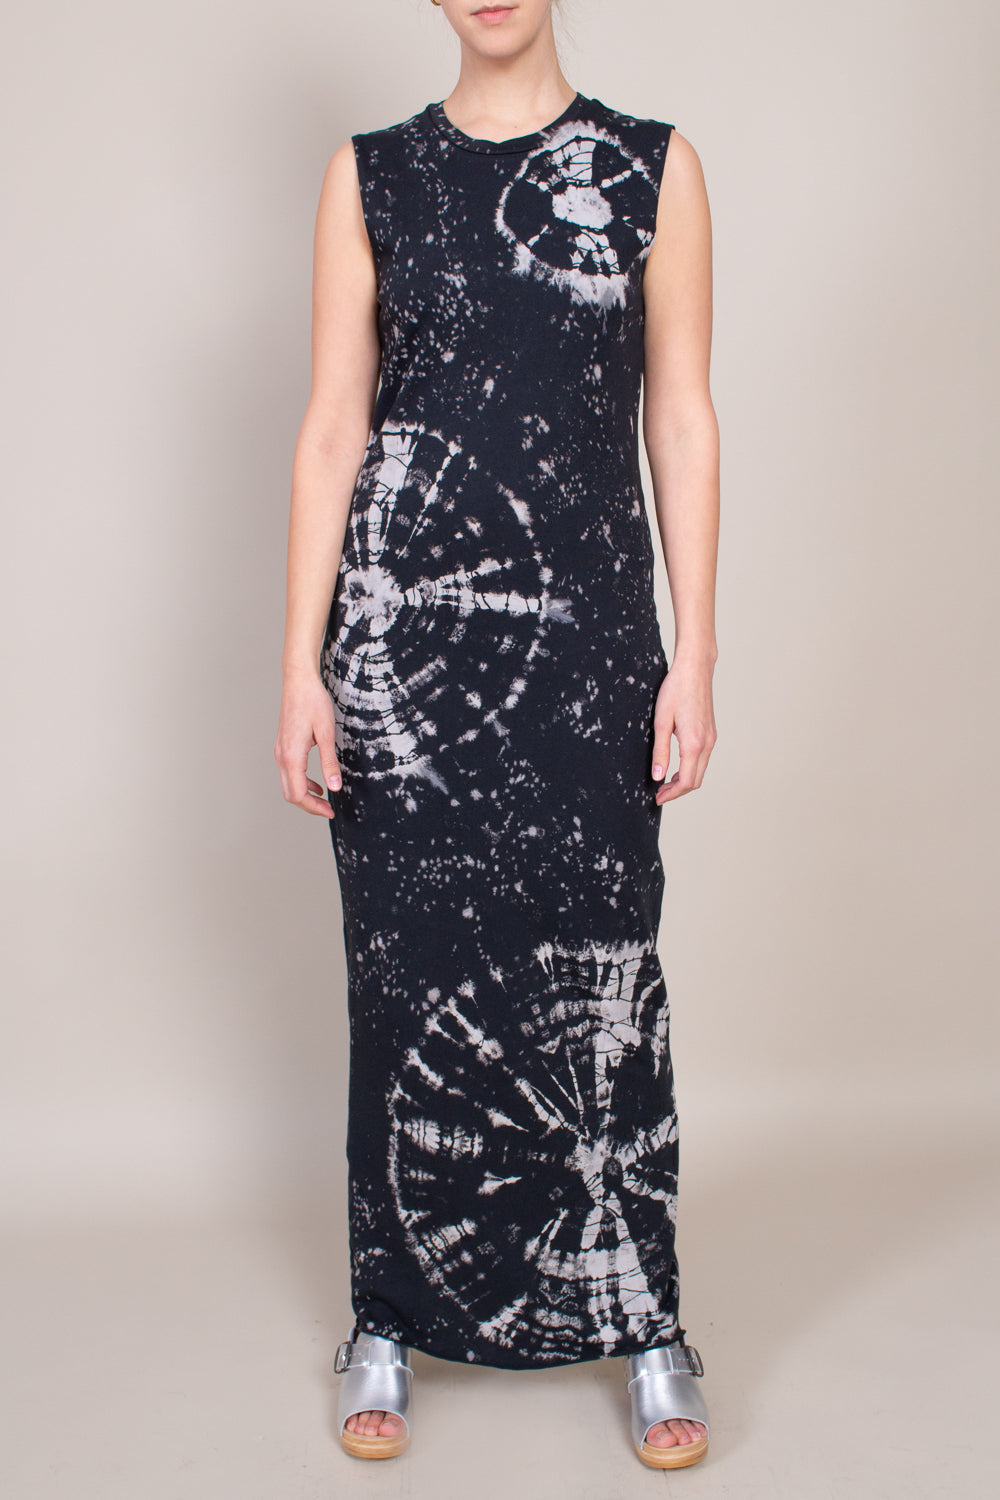 Muscle Maxi Dress in Black Constellation